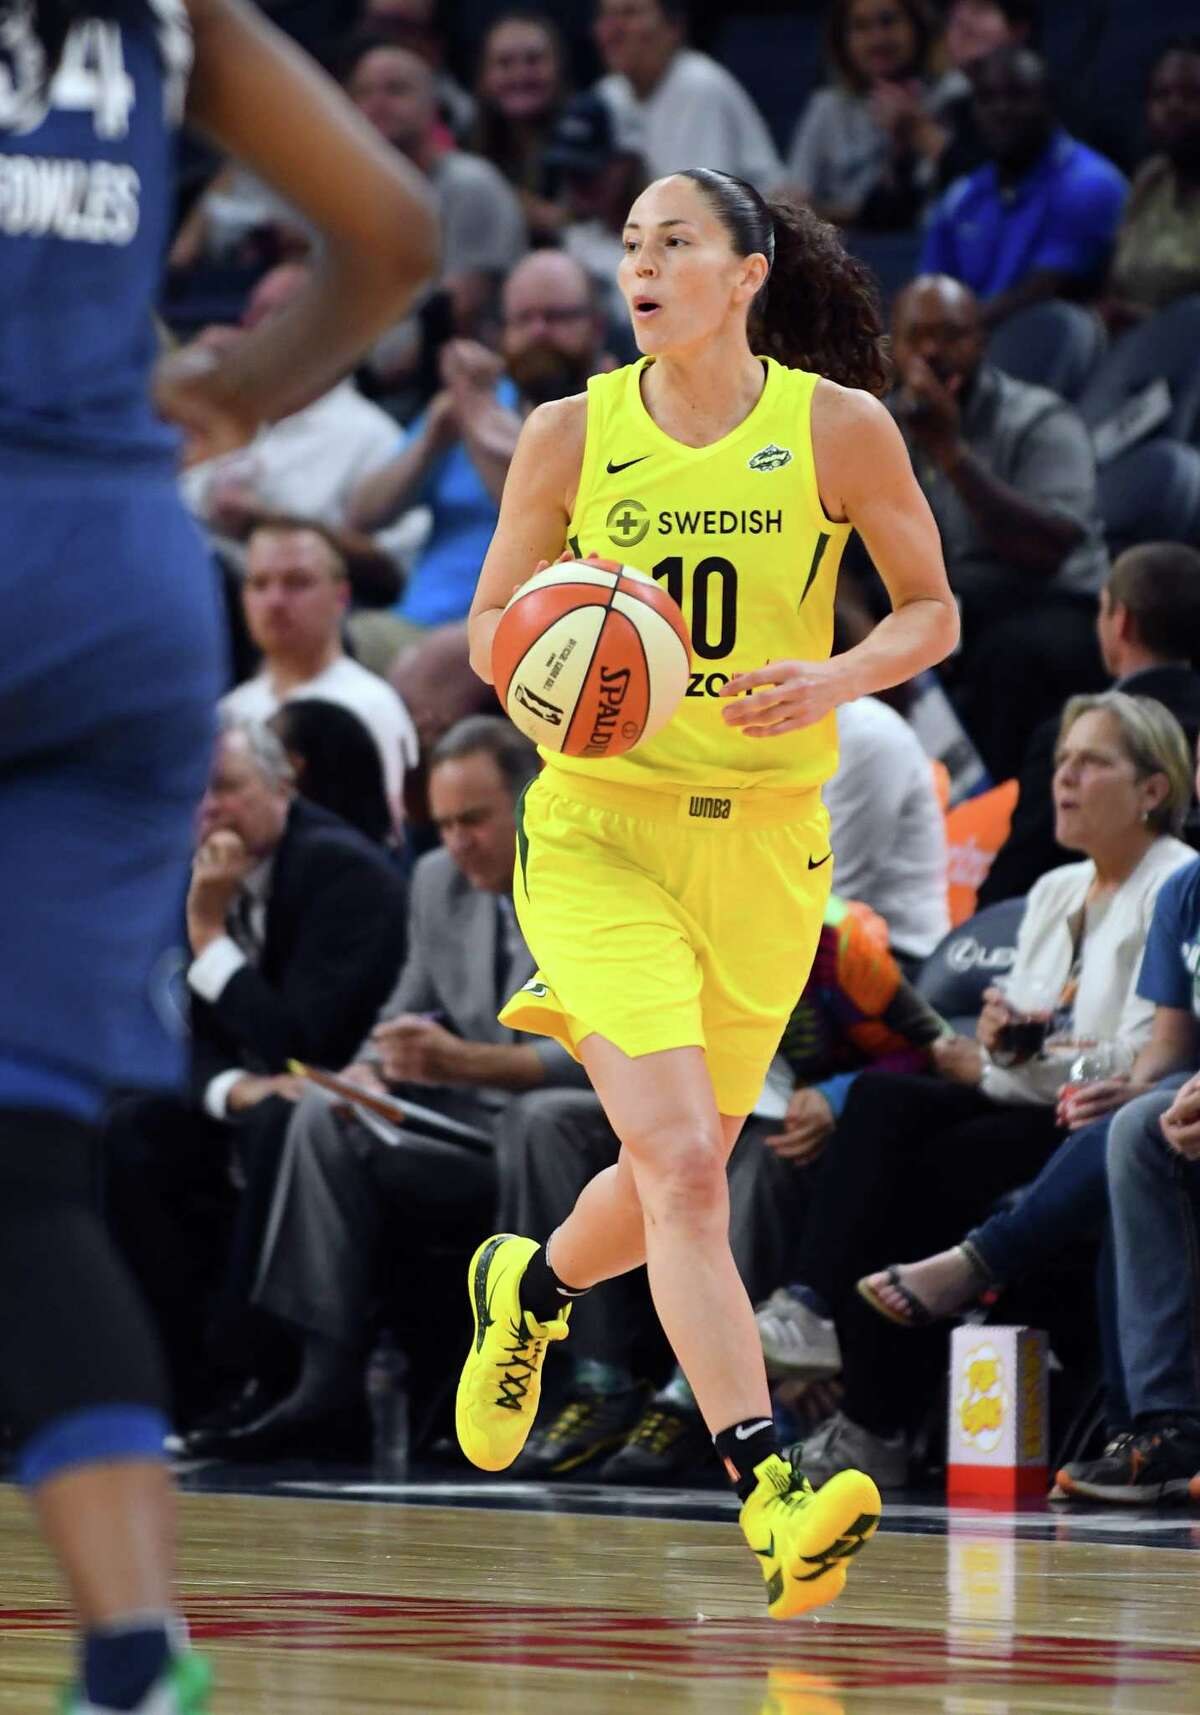 MINNEAPOLIS, MN - JUNE 26: Seattle Storm Guard Sue Bird (10) looks to pass during a WNBA game between the Minnesota Lynx and Seattle Storm on June 26, 2018 at Target Center in Minneapolis, MN. The Lynx defeated the Storm 91-79.(Photo by Nick Wosika/Icon Sportswire via Getty Images)